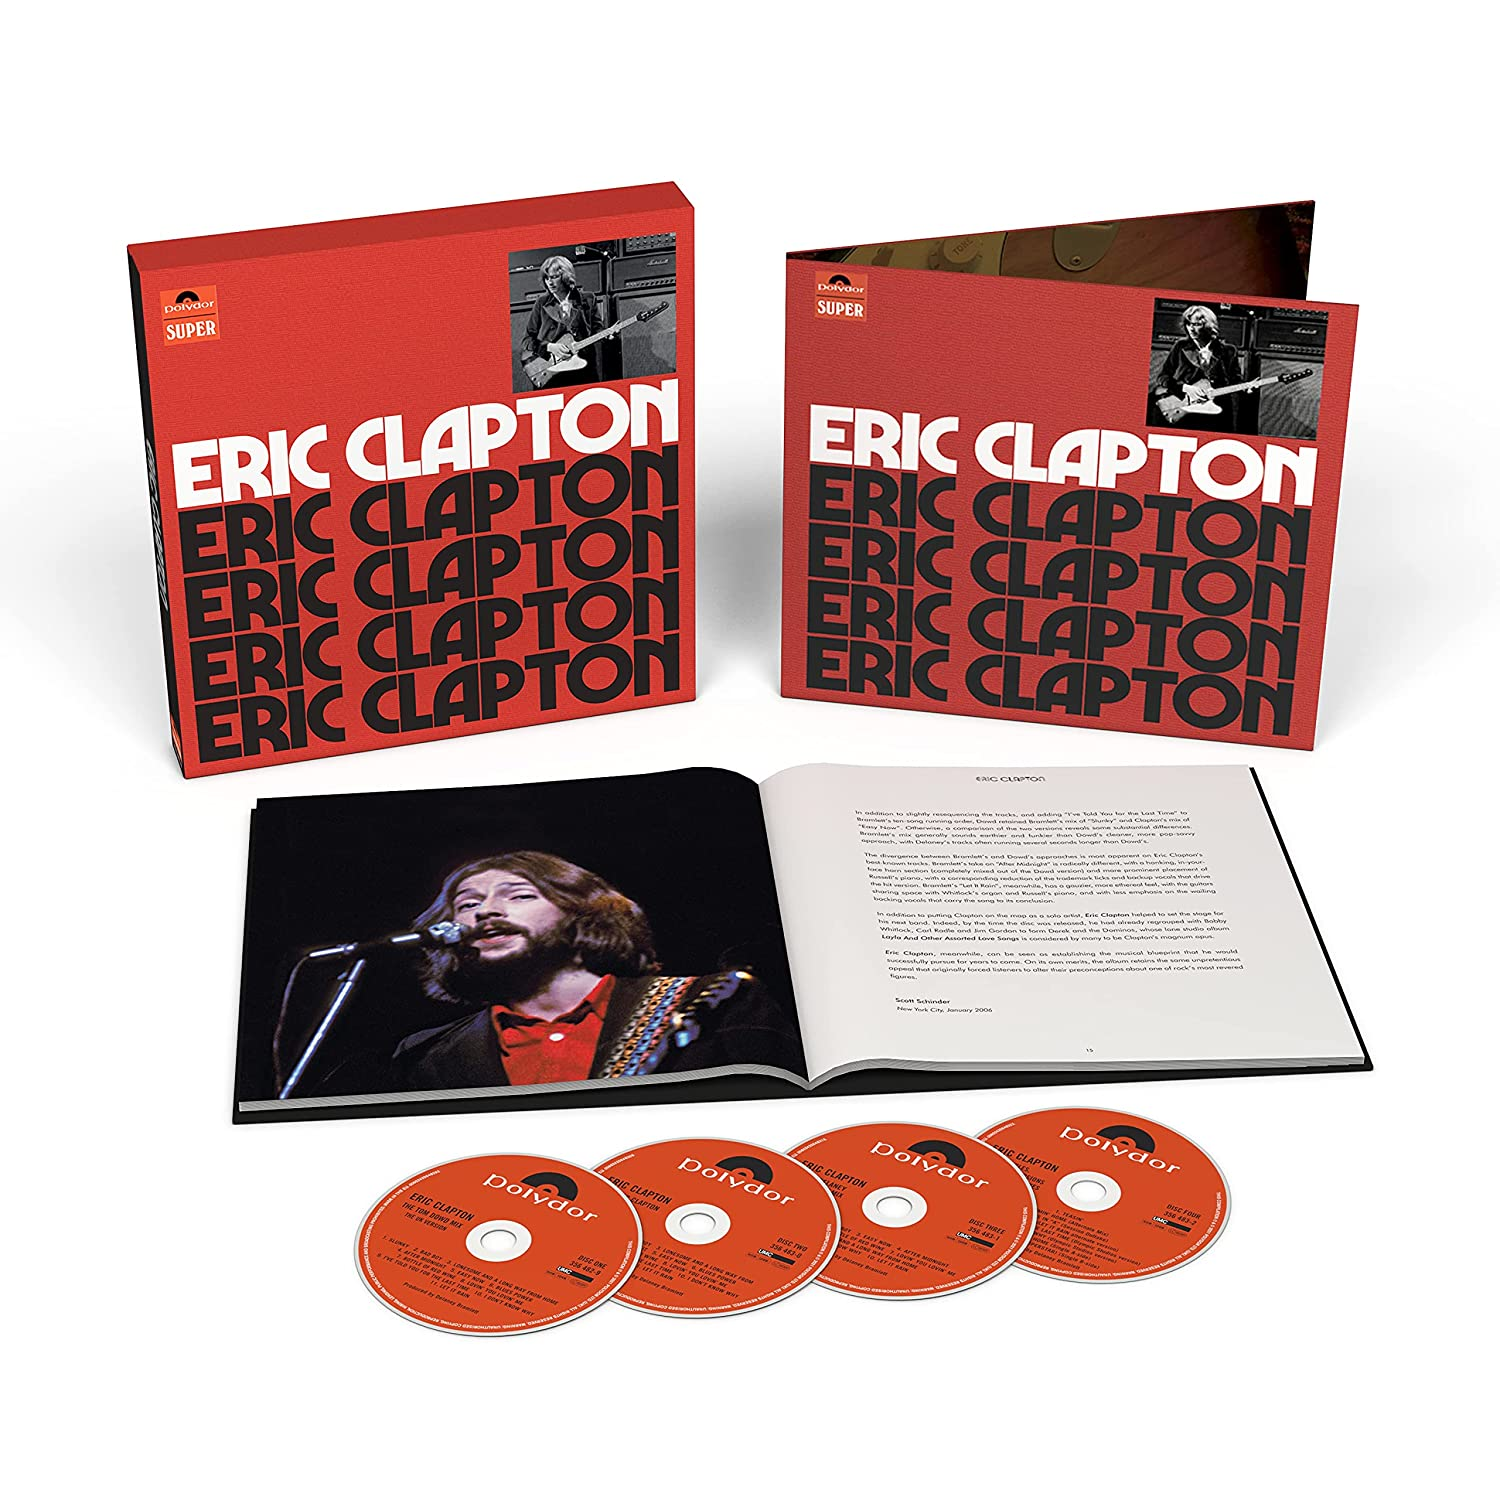 Eric Clapton To Release Anniversary Deluxe Edition Of Classic Debut Album - That Eric Alper